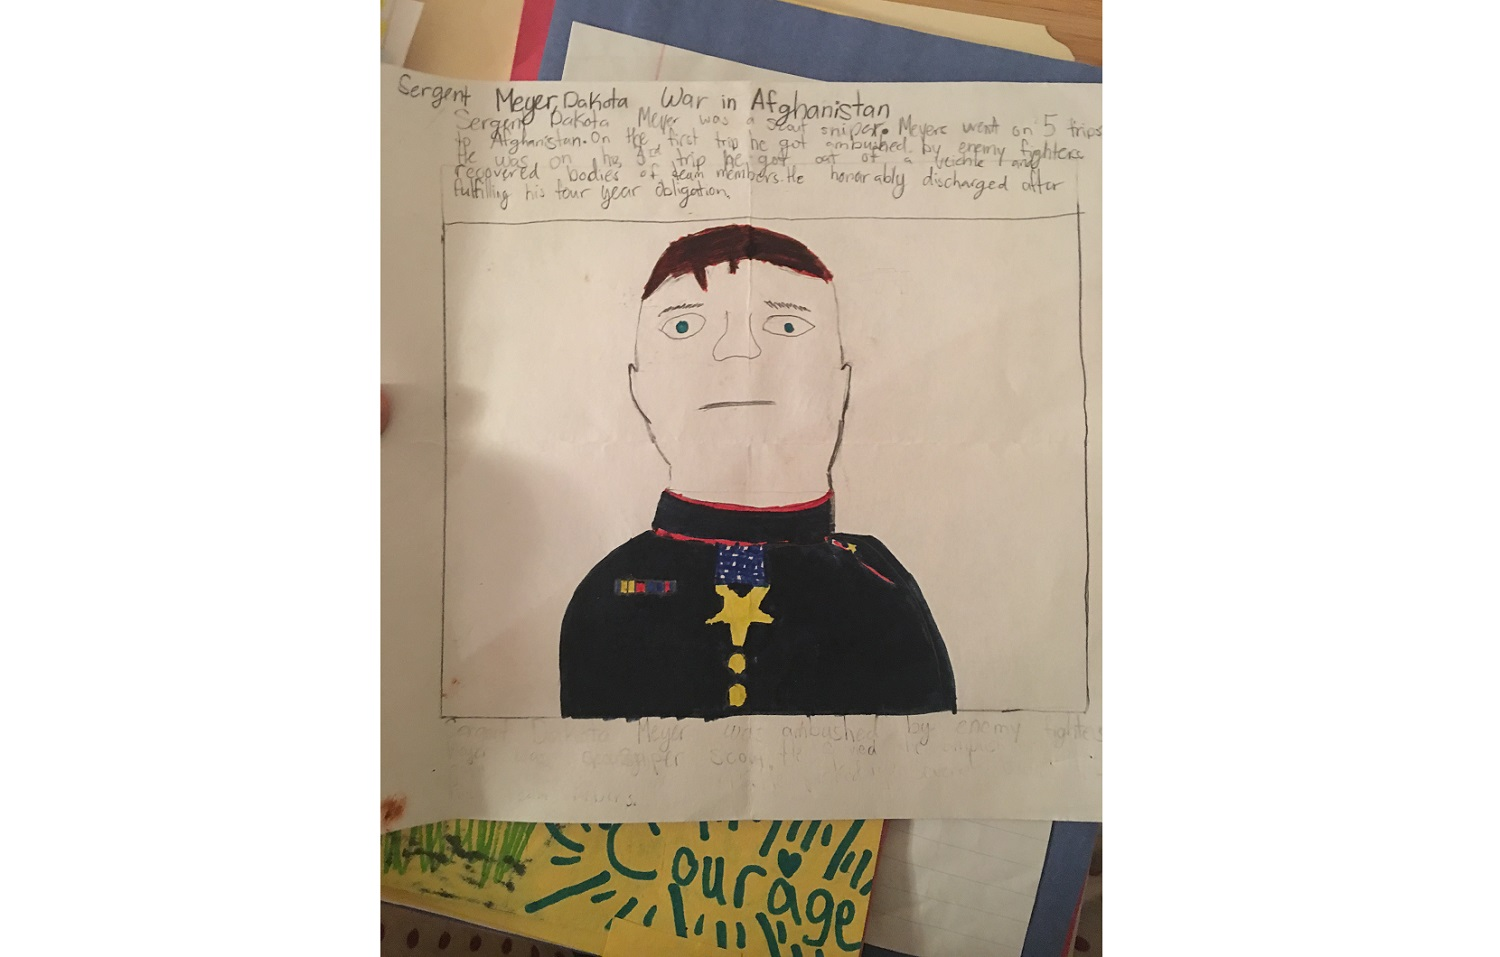 A student's letter to (and portrait of) Dakota Meyer, who earned the Medal of Honor as a Marine corporal for his heroism in the face of an enemy ambush in Afghanistan in 2009. (Courtesy of Janine Stange)